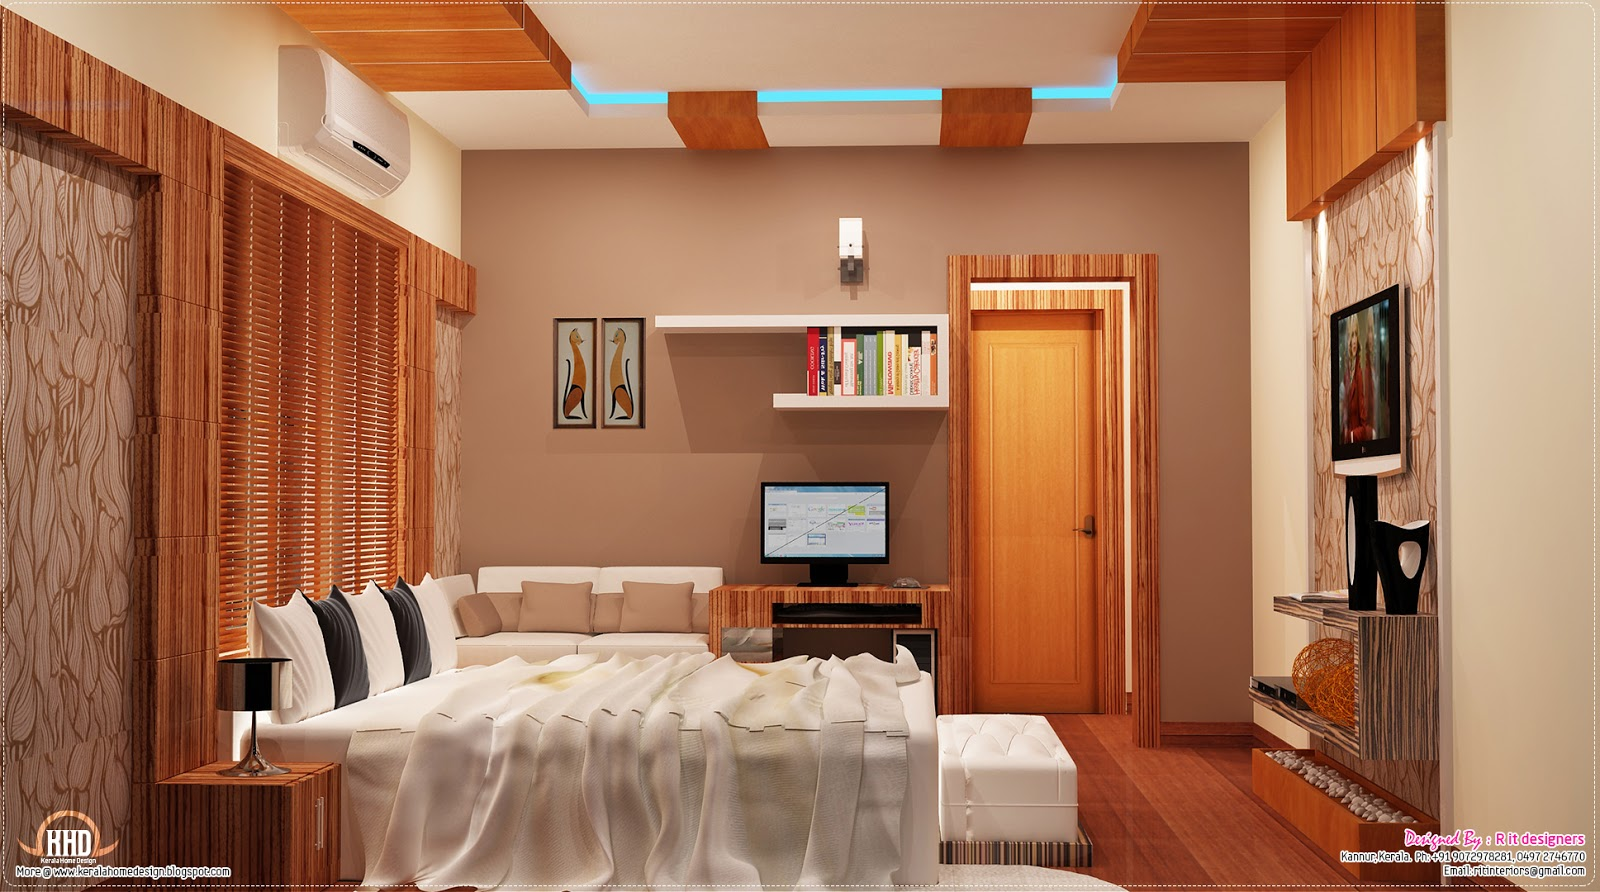 2700 sq.feet Kerala home with interior designs | House ... on House Interior Ideas  id=57067